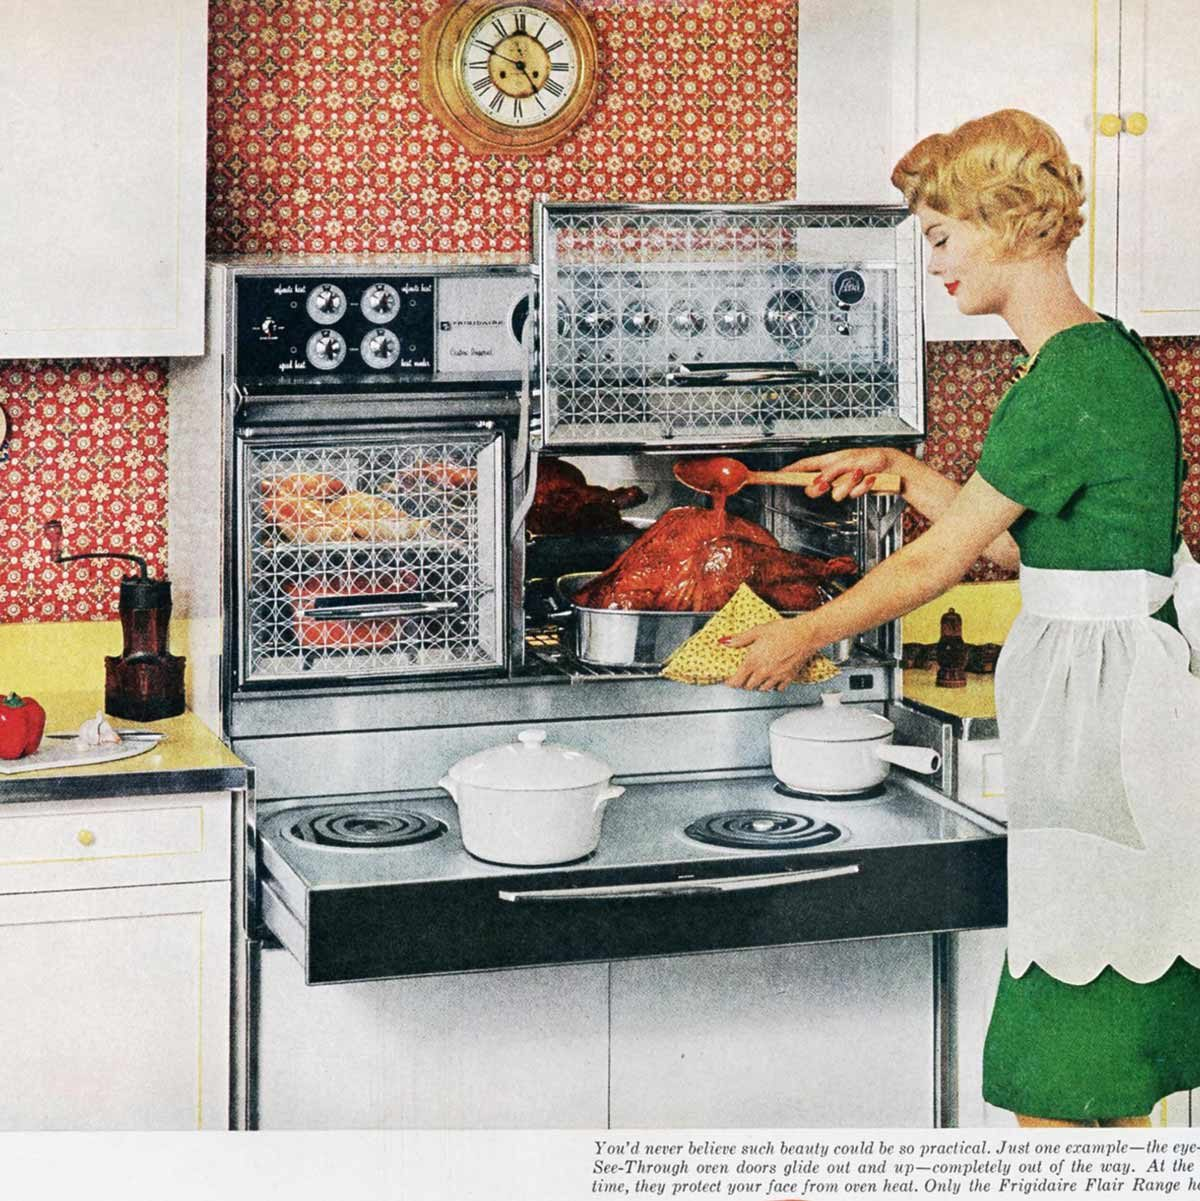 Kitchen Of The Future: Astounding Ways The 1950s 'Kitchen Of The Future' Was Spot On